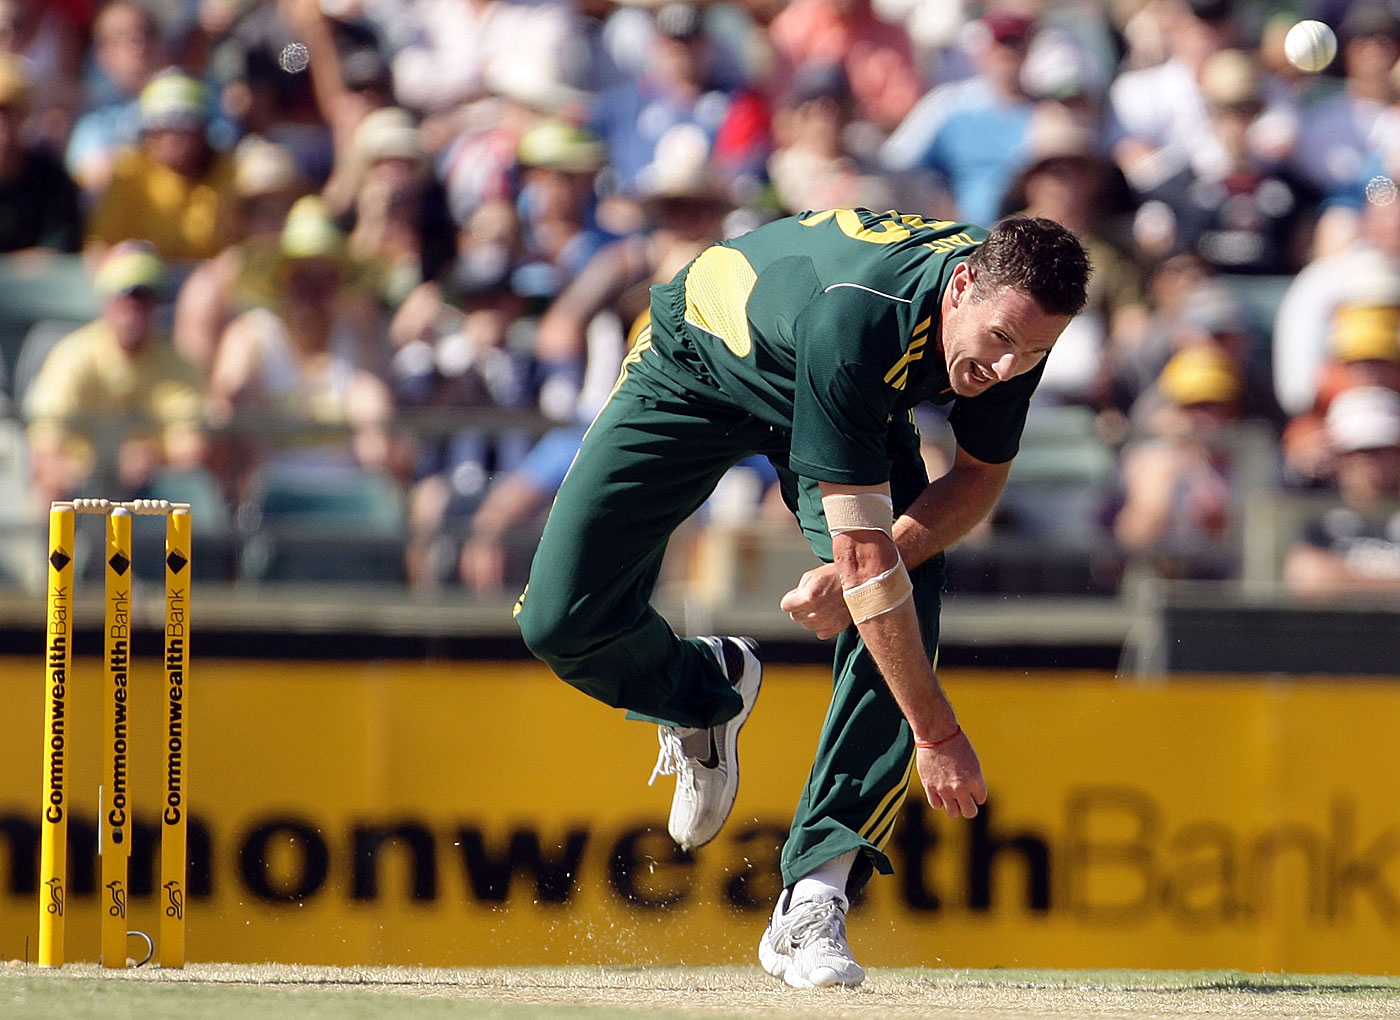 Never mind the action: Tait bowls as if his body might break in the middle of any given delivery